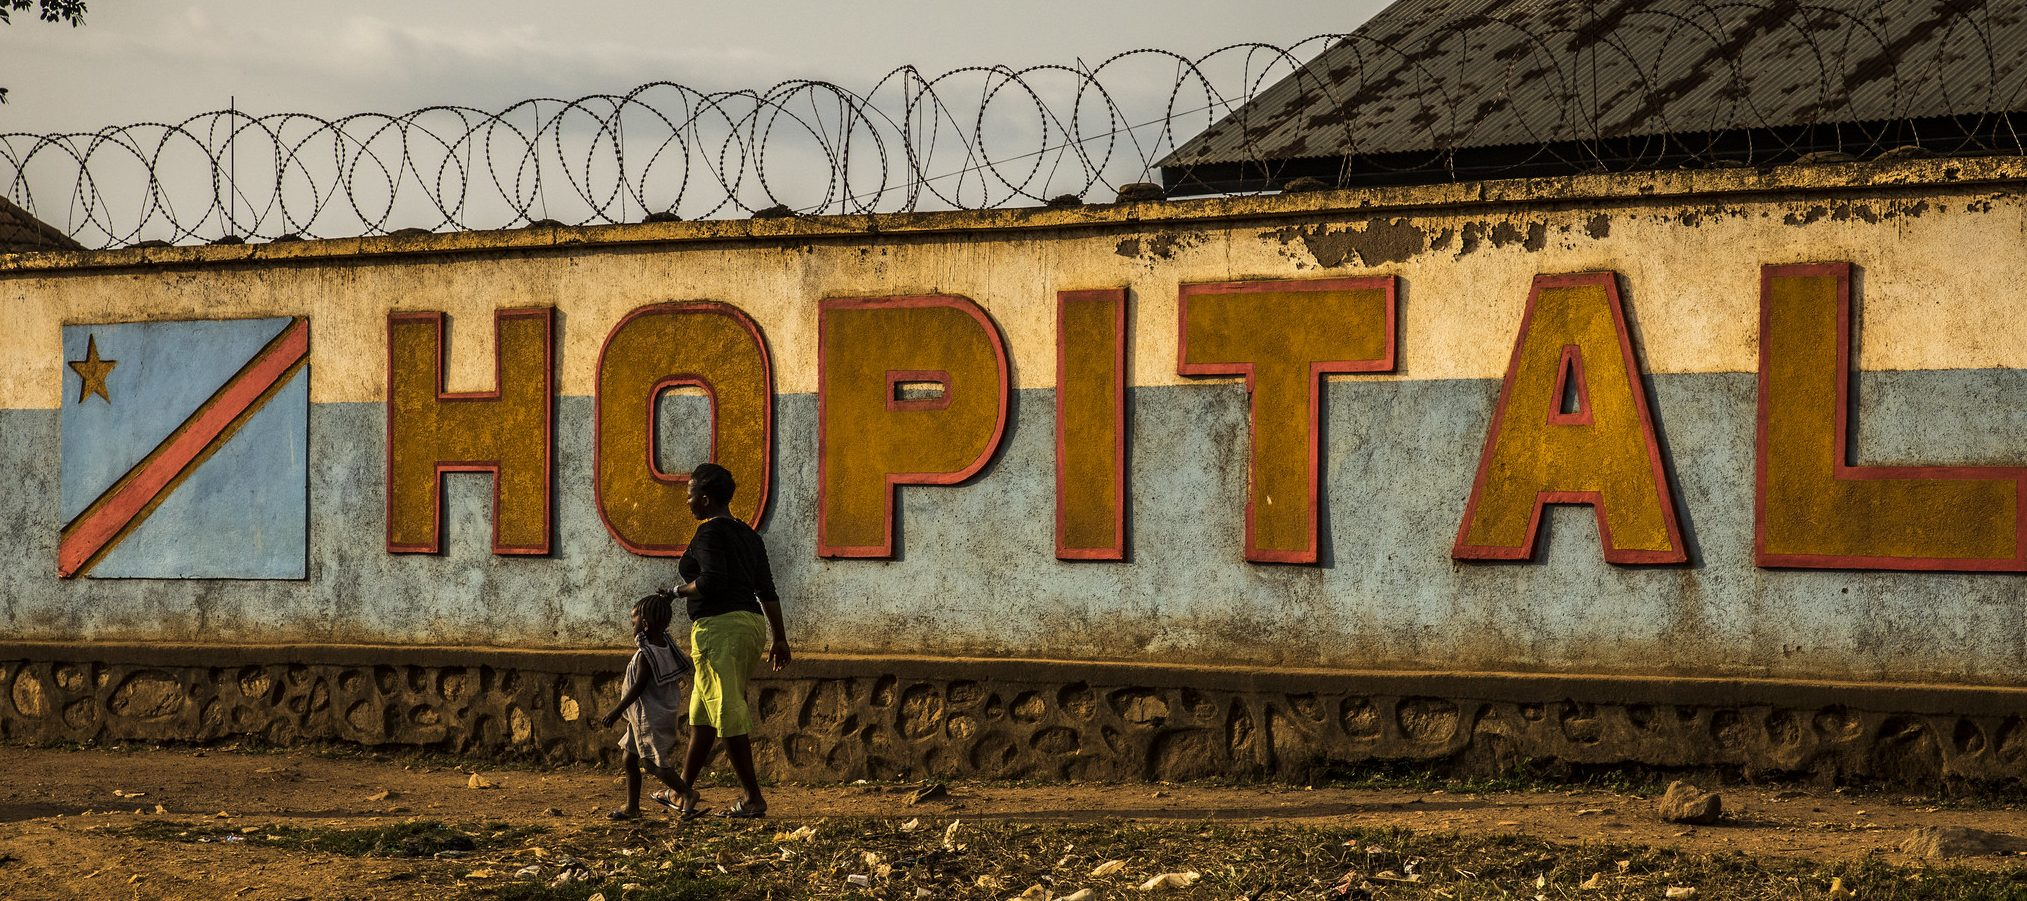 An African woman and small child walk past a wall with the word 'HOPITAL' and barbed wire across the top